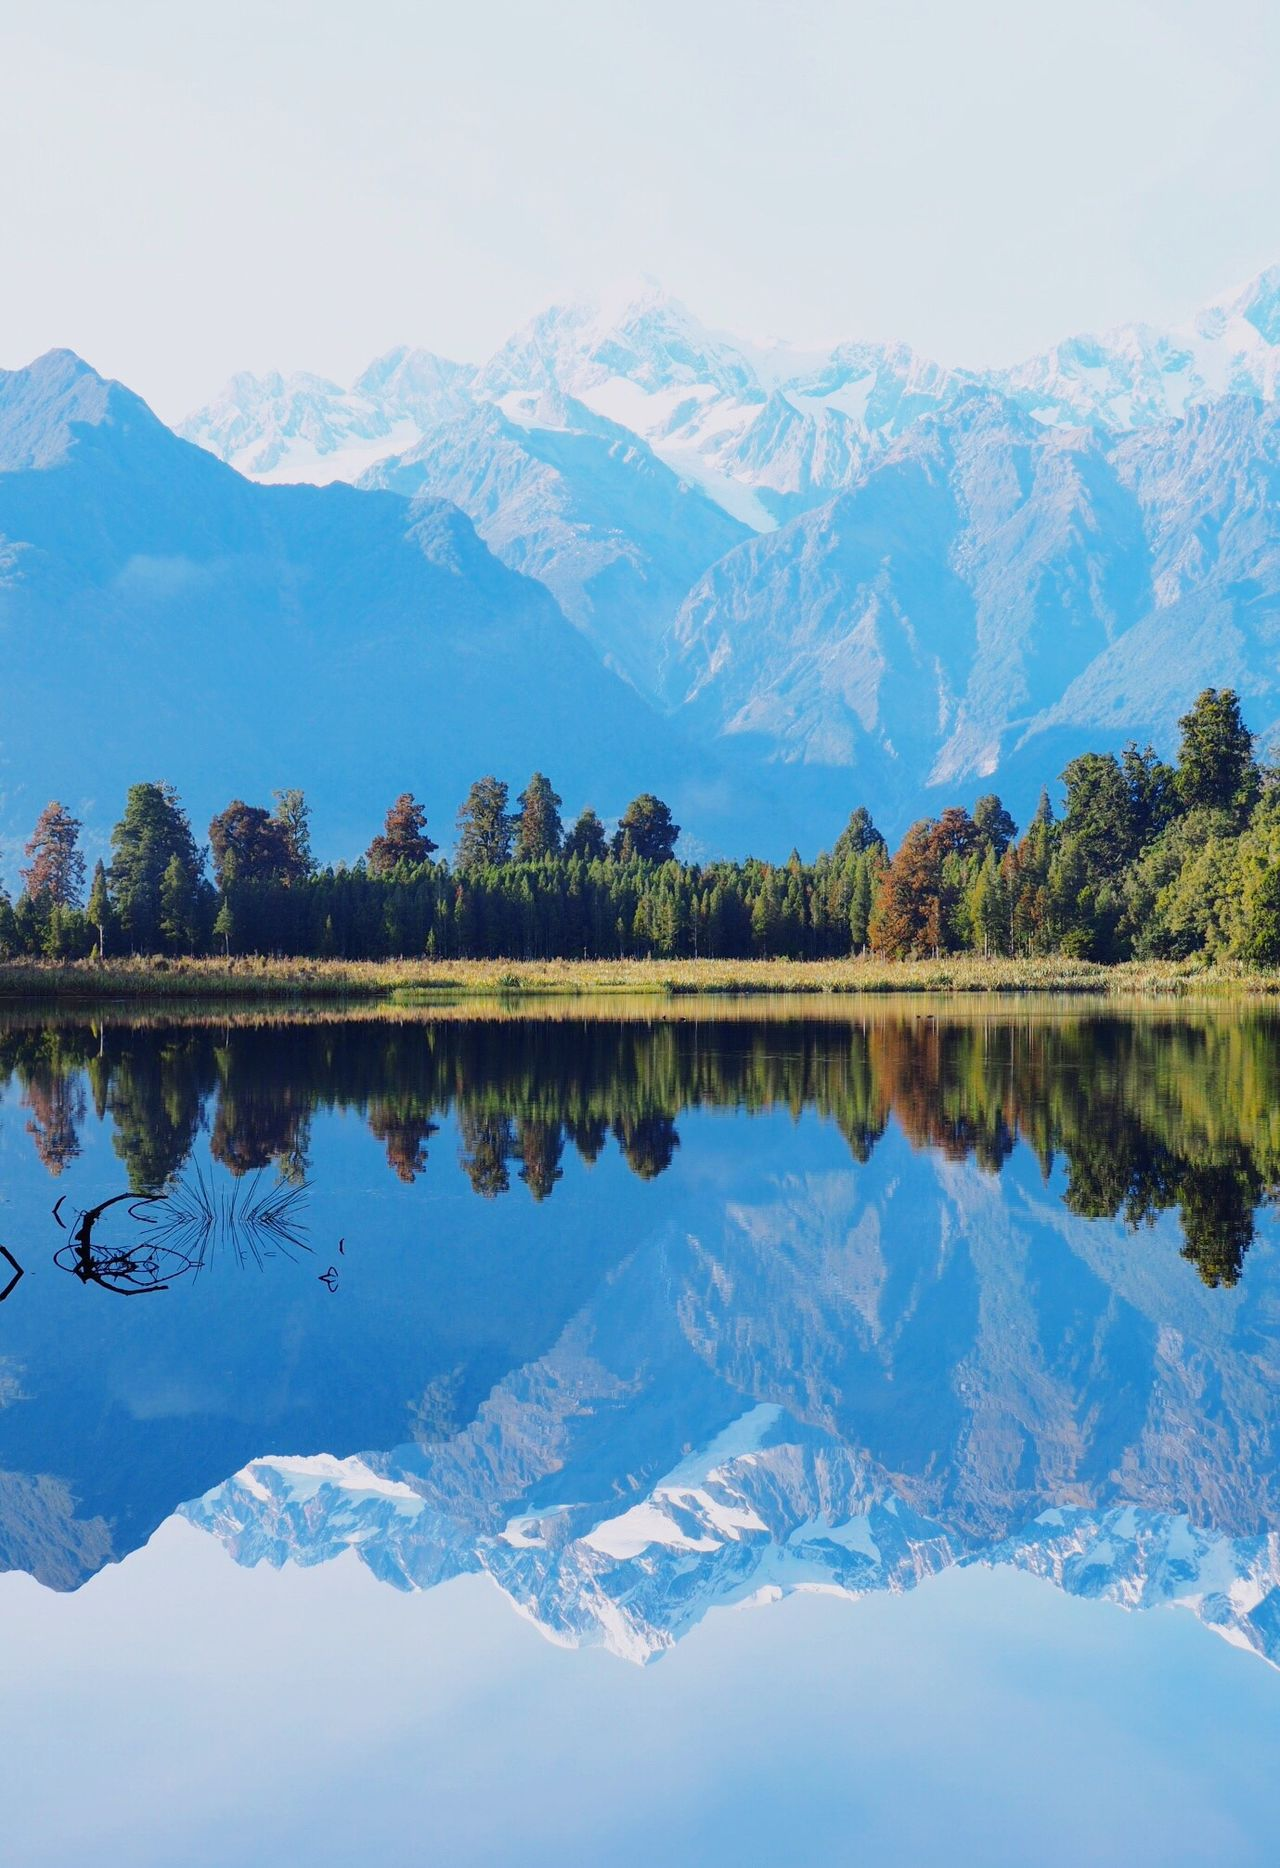 MtCook Newzealand Lake Matheson Fox Glacier Journey Traveling Trip